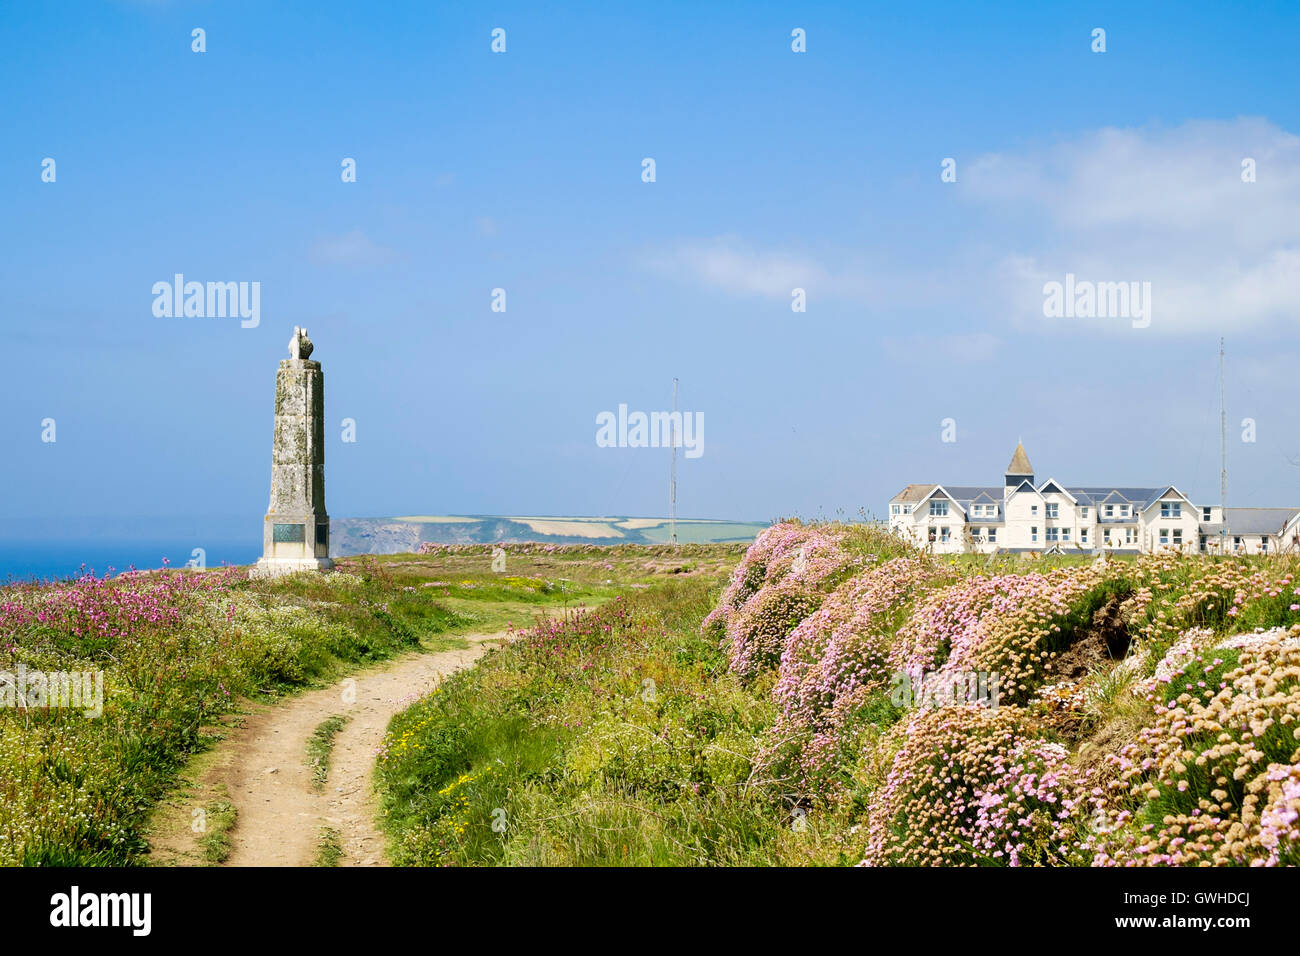 Marconi radio monument to Guglielmo Marconi in Poldhu, Cornwall, England UK, site of first transatlantic radio transmission - Stock Image